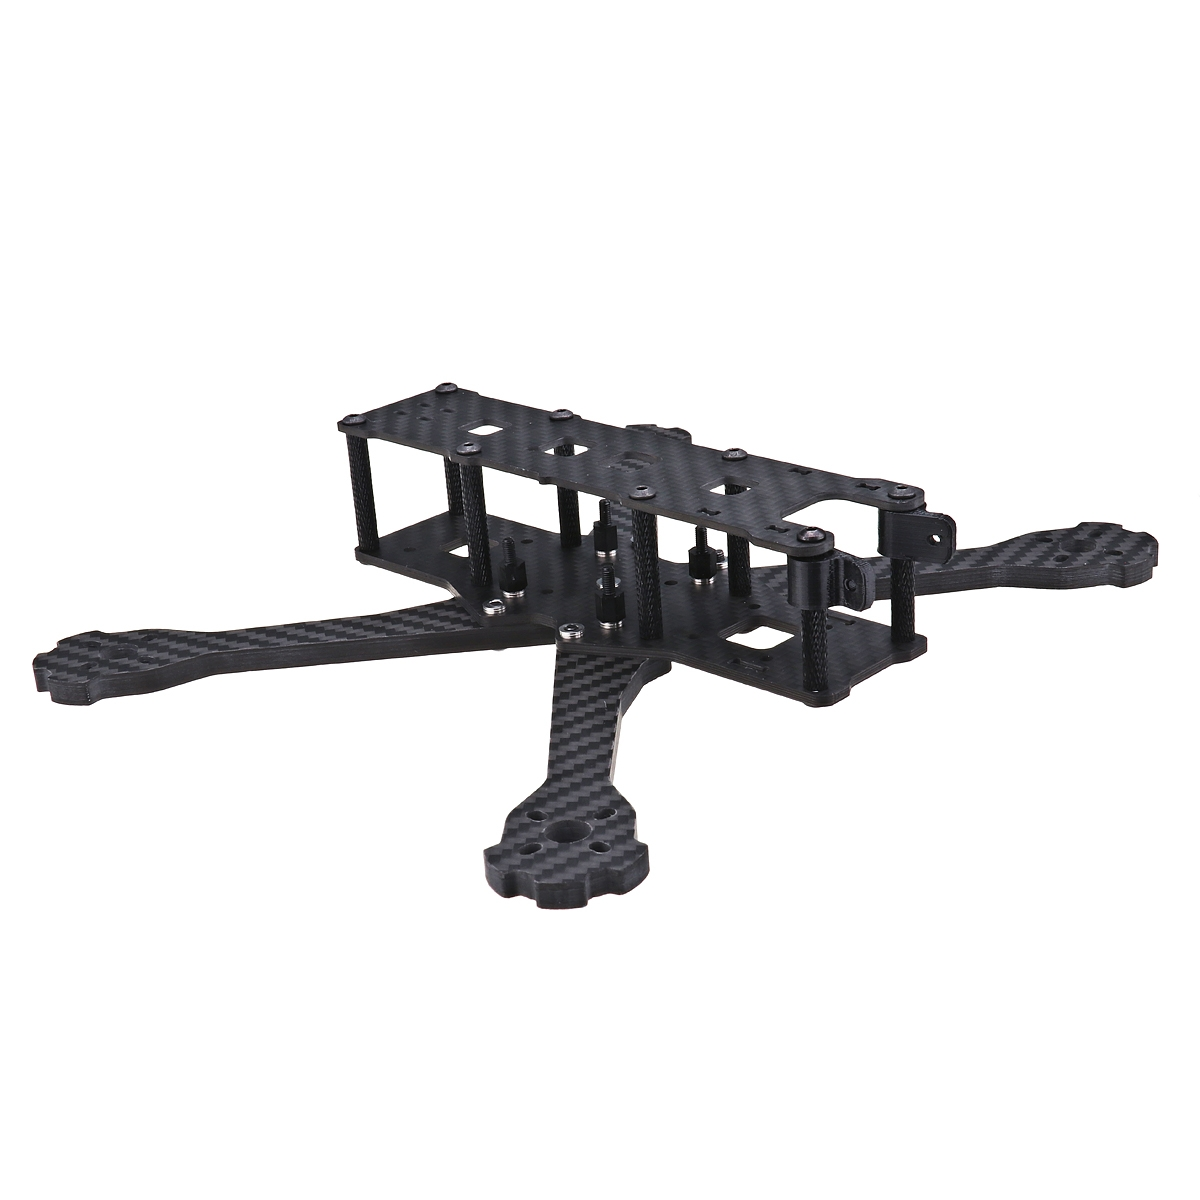 URUAV UF2 5/6/7 Inch 220/250/300mm Carbon Fiber FPV Racing Frame Kit 5.5mm Arm for RC Drone